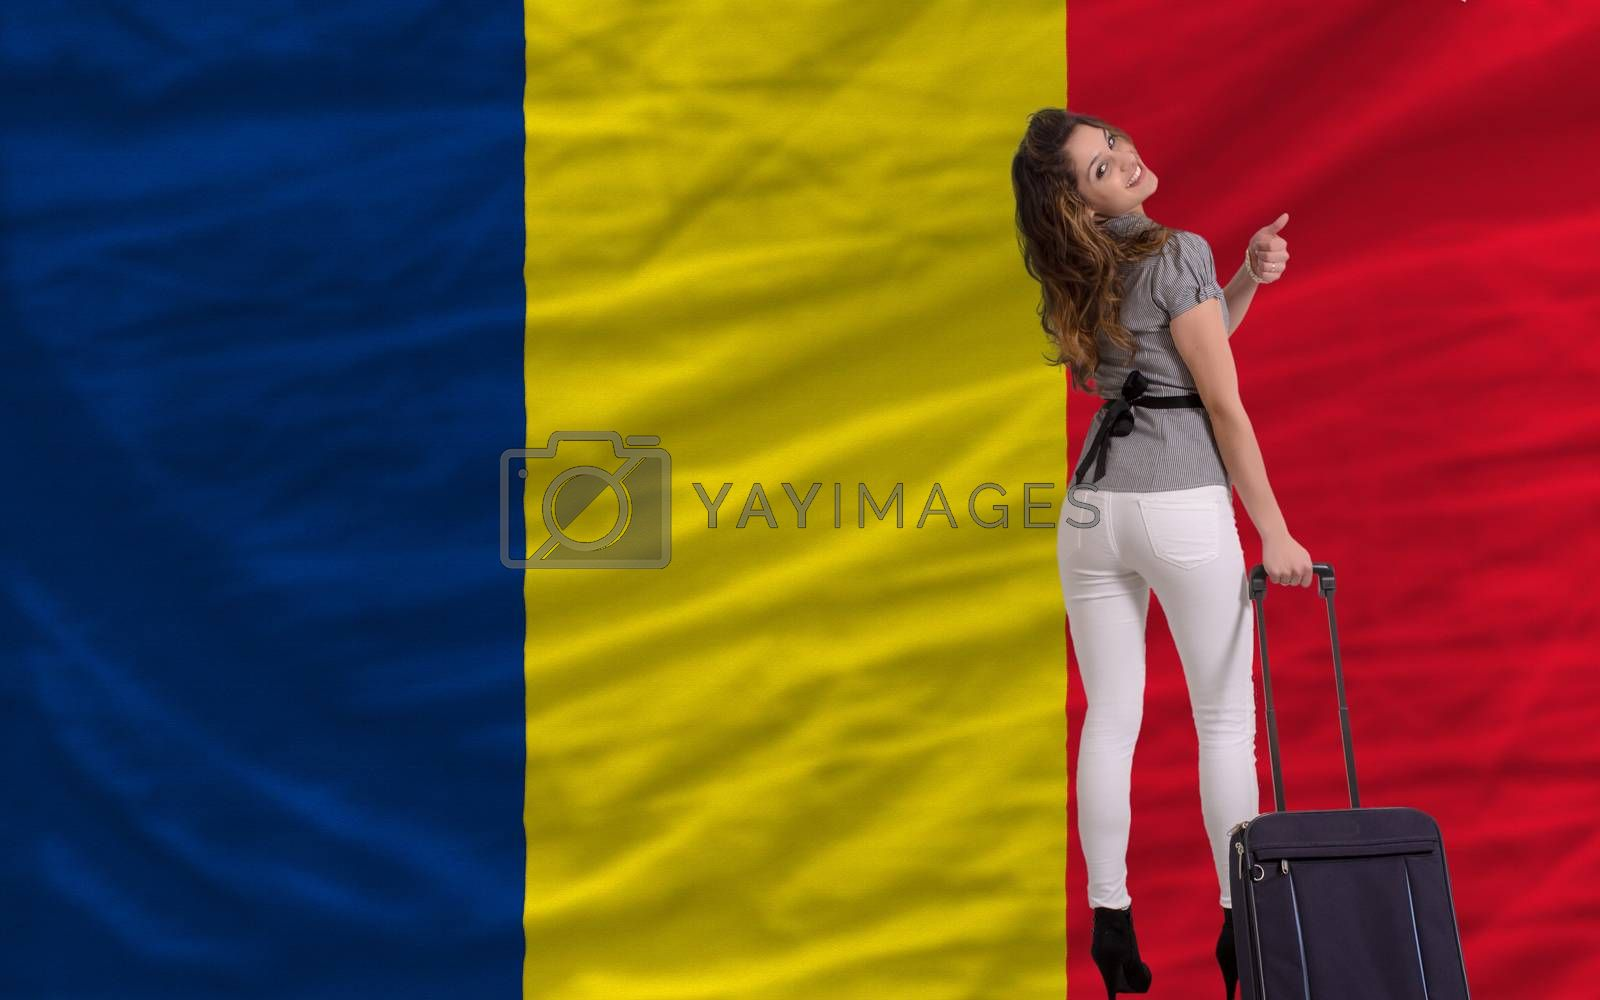 Royalty free image of tourist travel to chad by vepar5